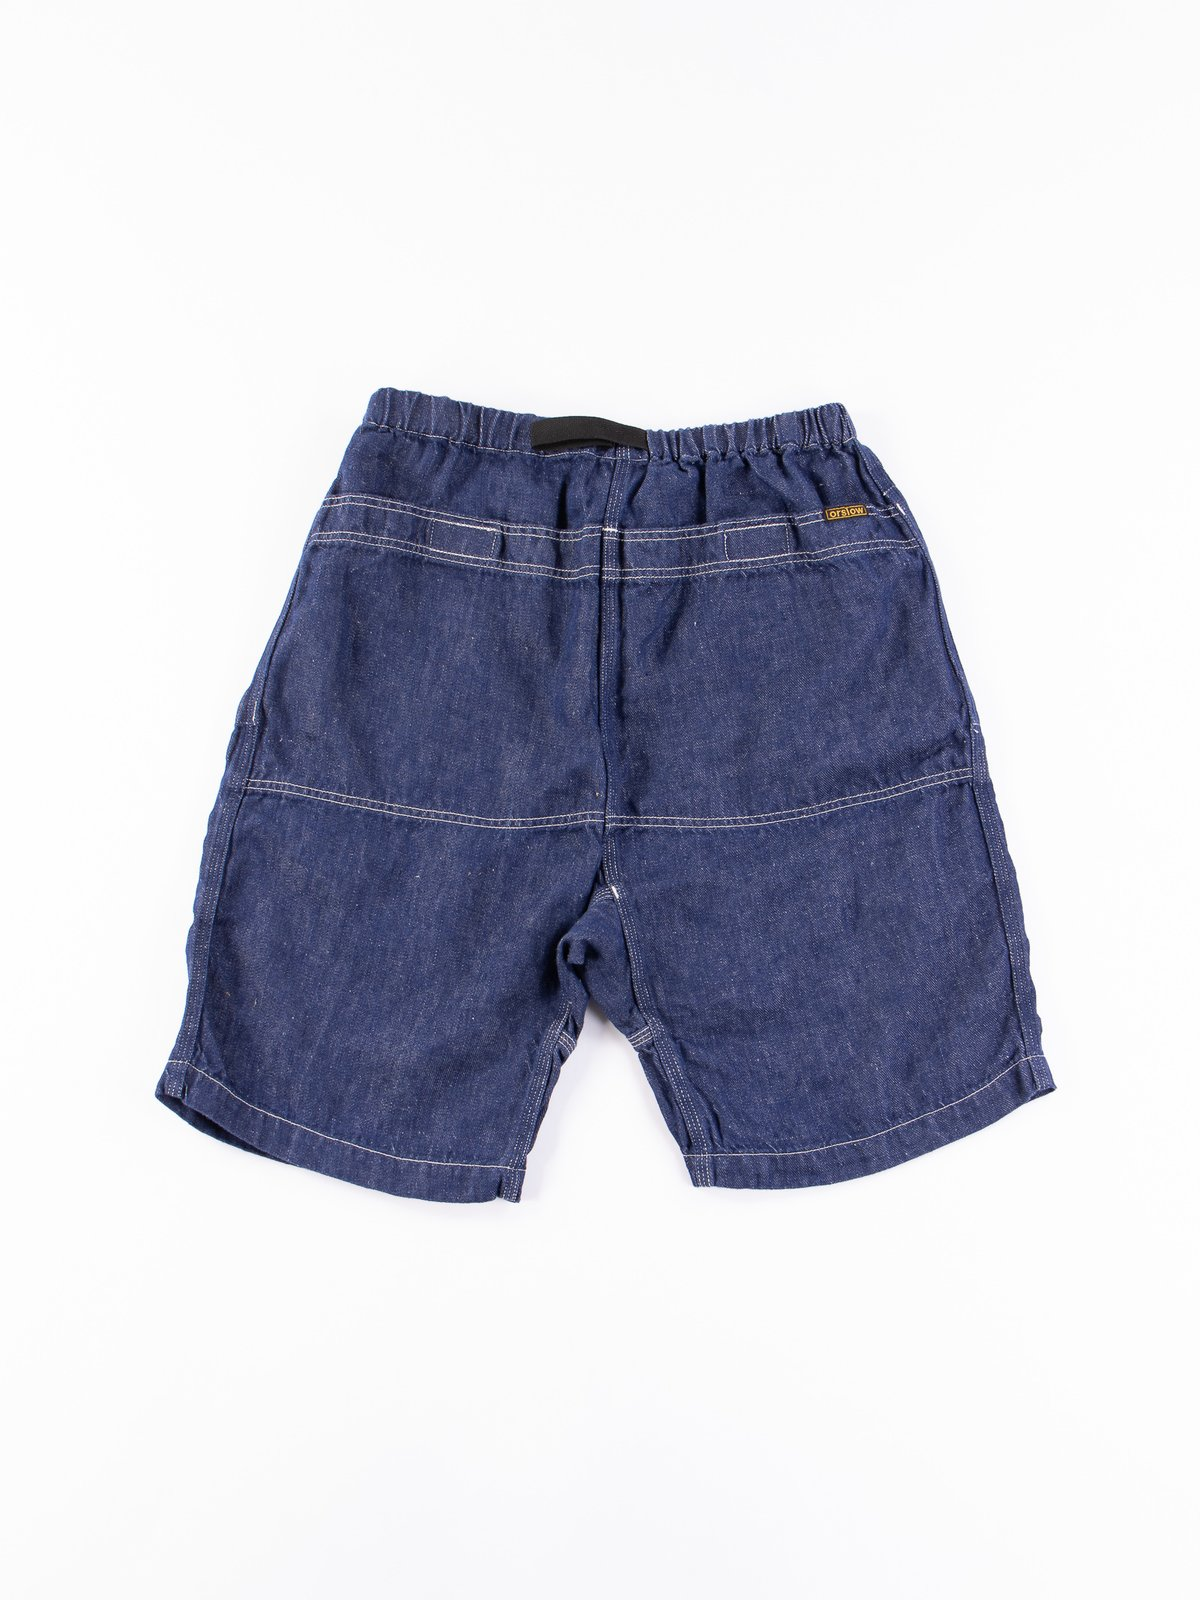 One Wash Linen Denim Climbing Short - Image 5